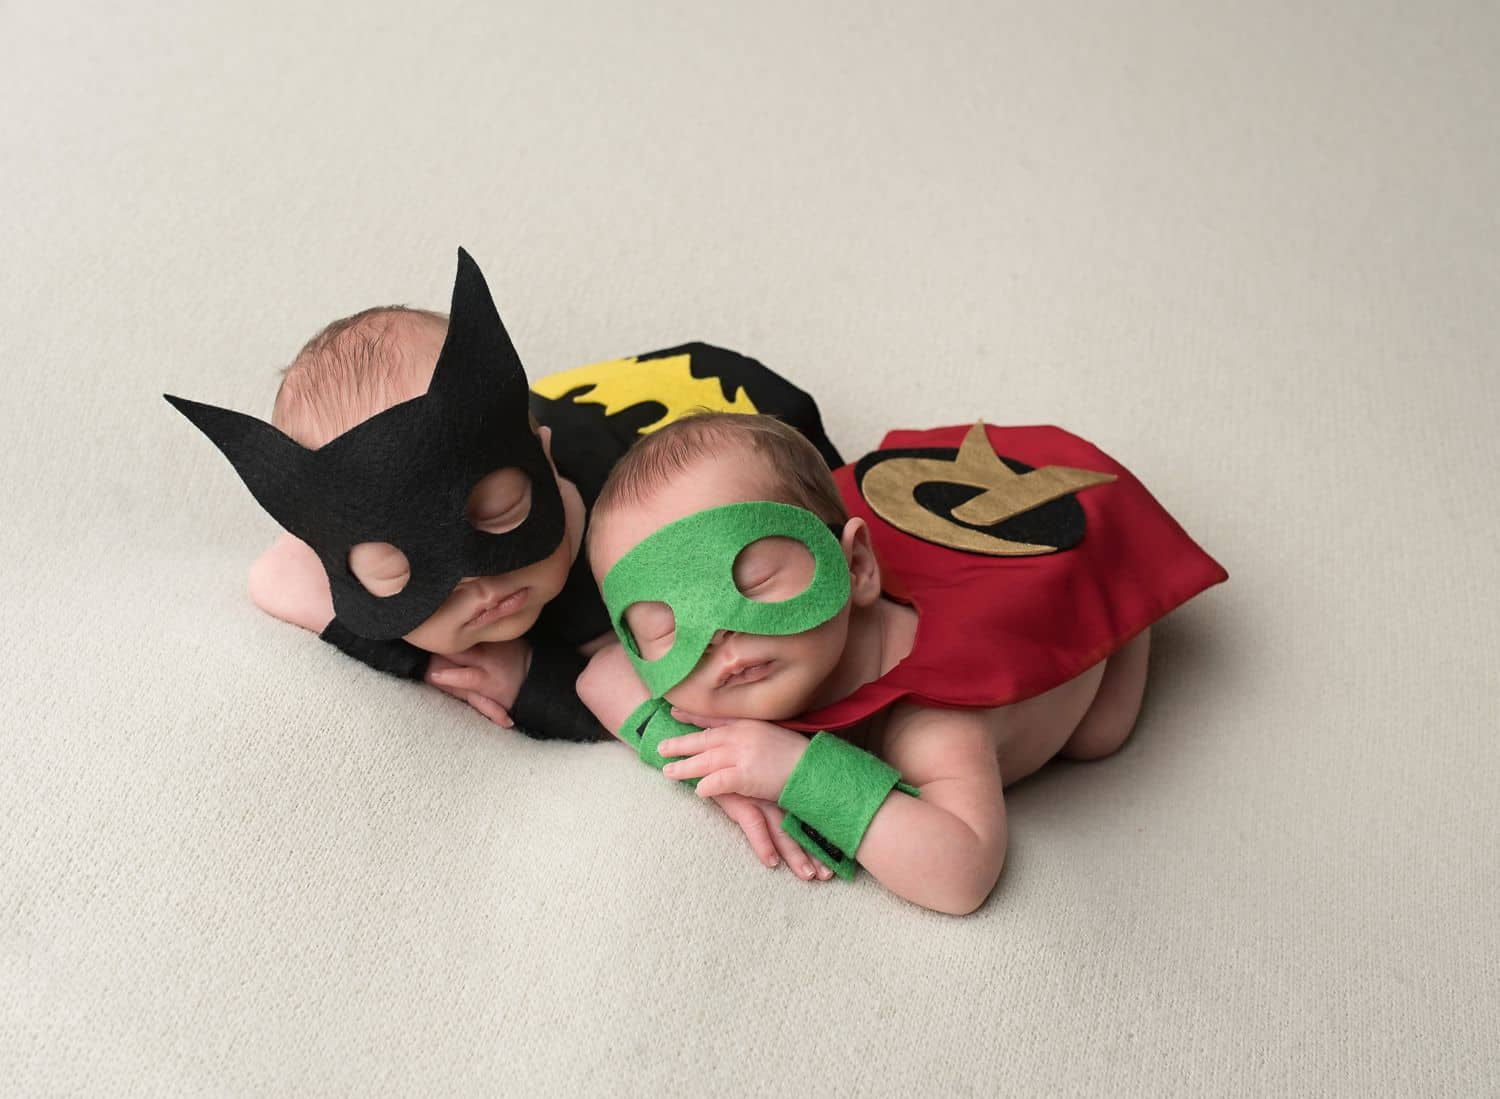 Private: These Are the Best Newborn Photography Props on the Market